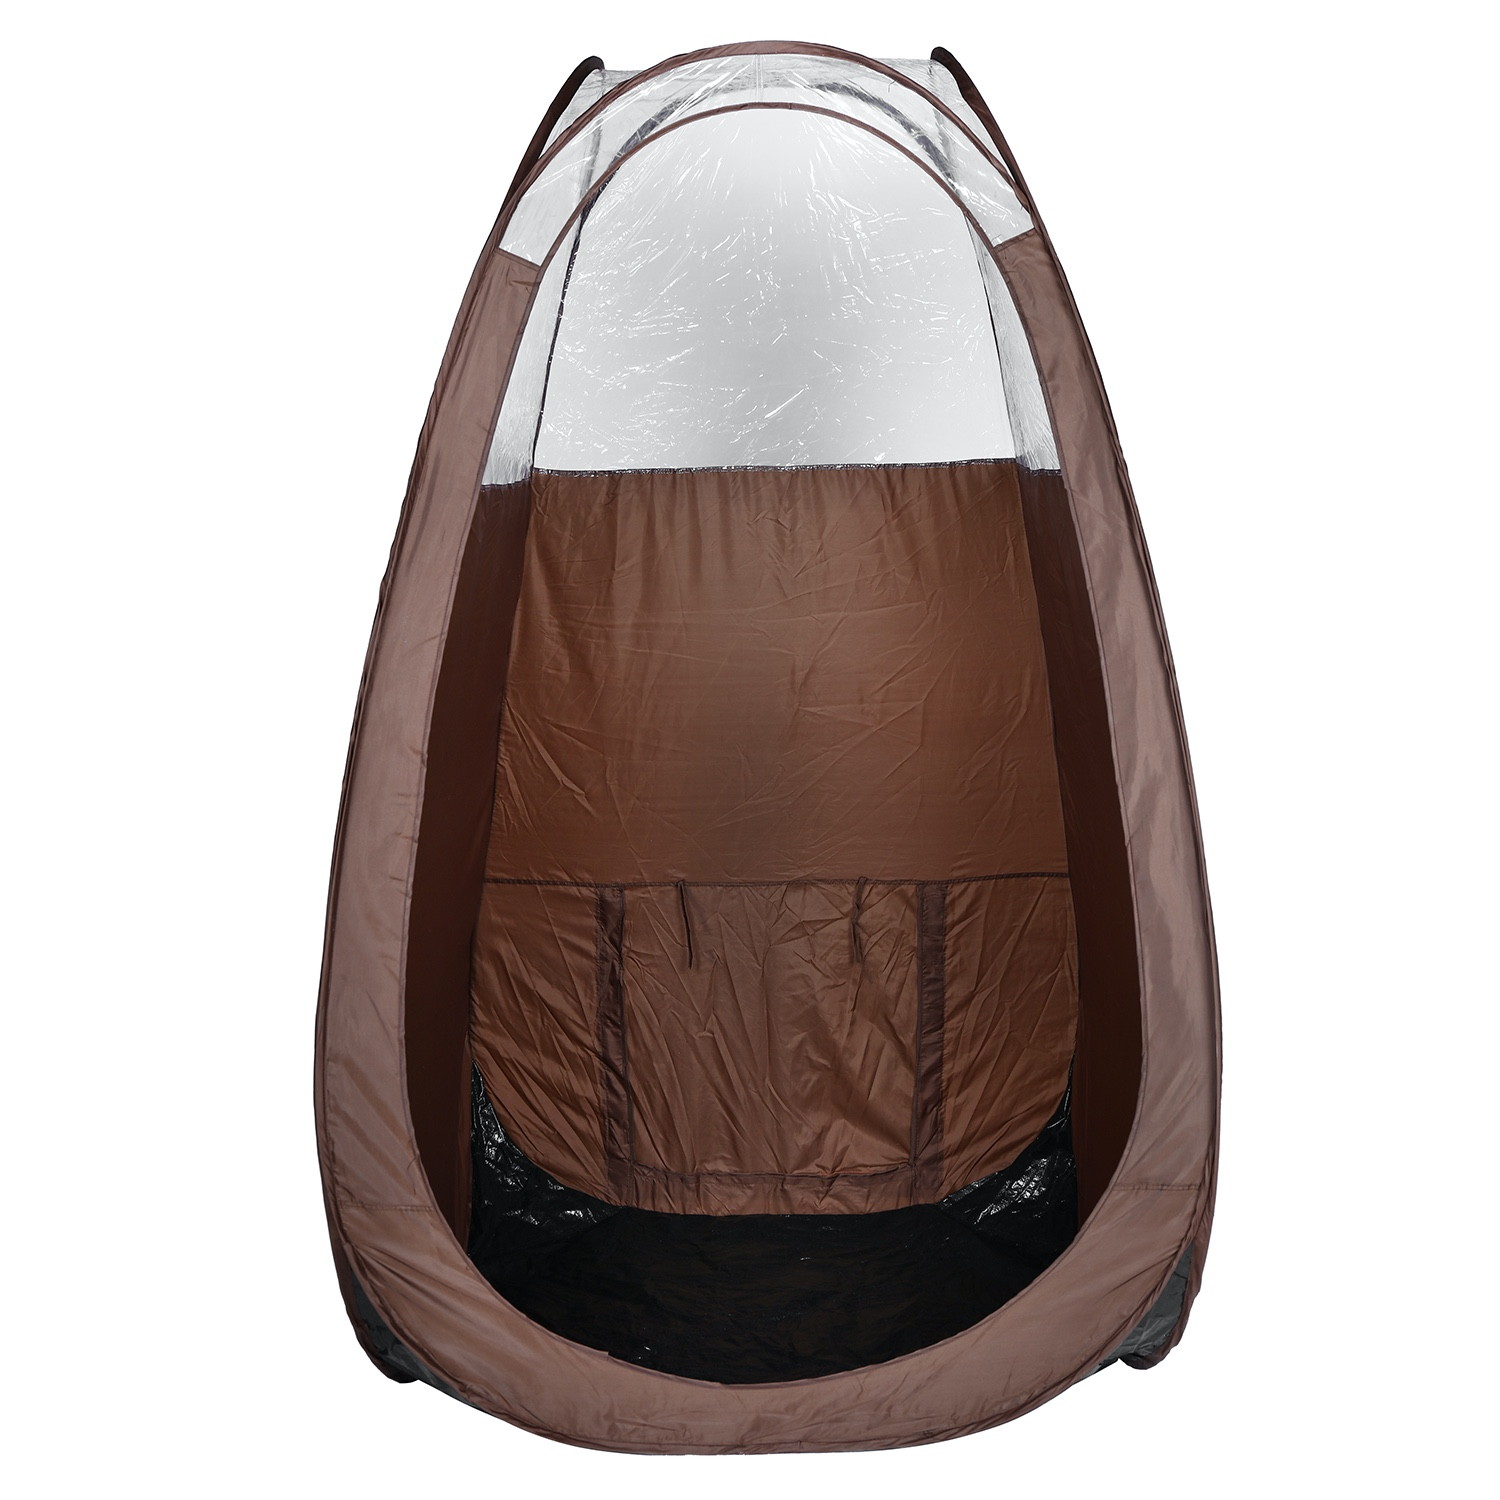 Portable Spray Tanning Tent